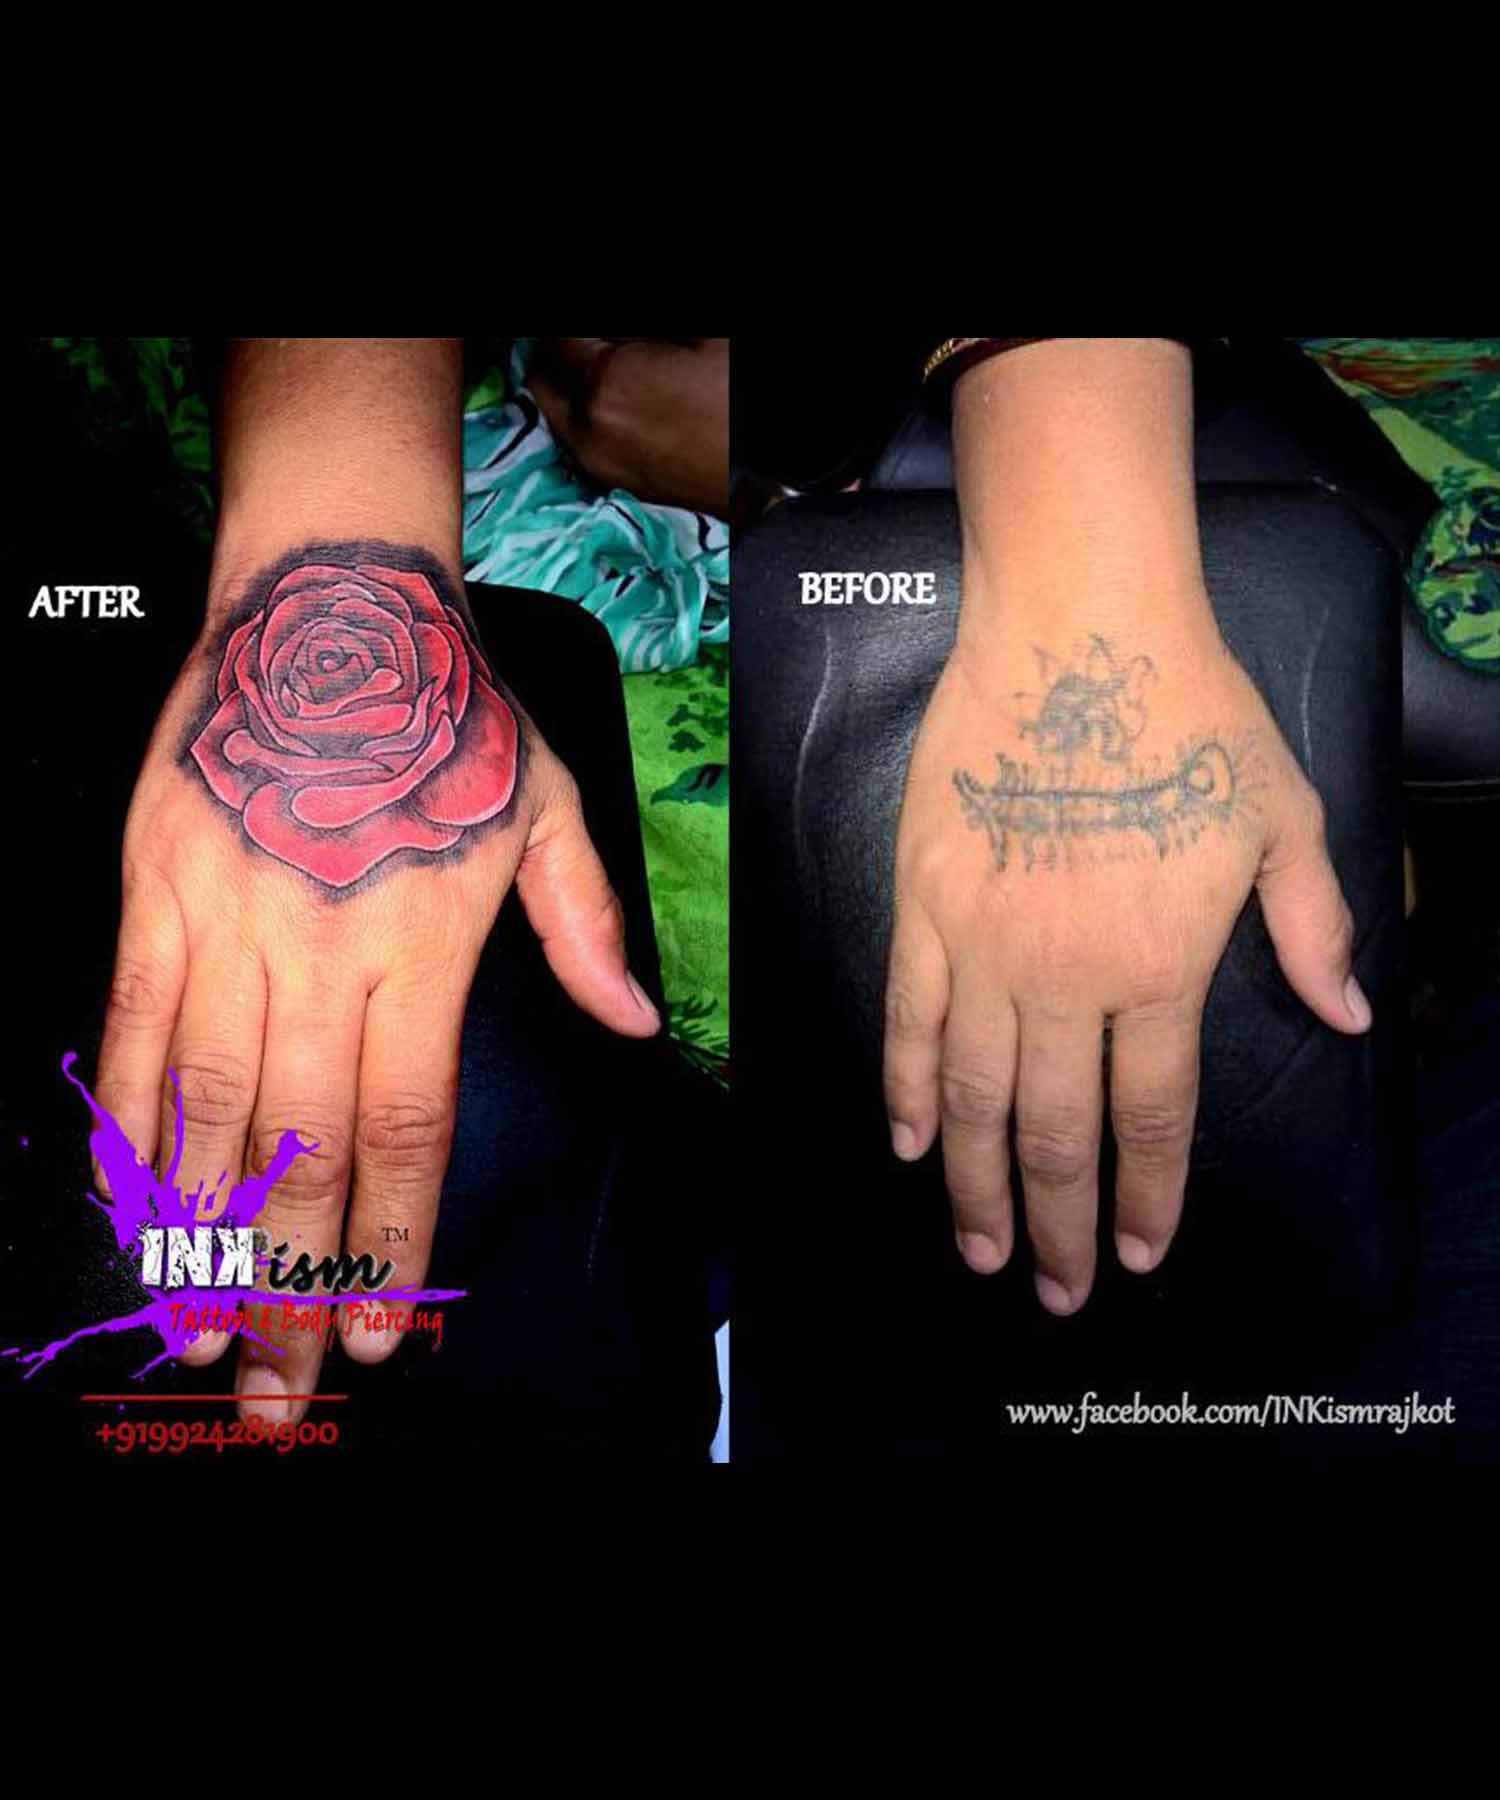 Rose realistic tattoo, Color tattoo, Coverup tattoo, rose tattoo, Inkism tattoo and body piercing rajkot gujarat